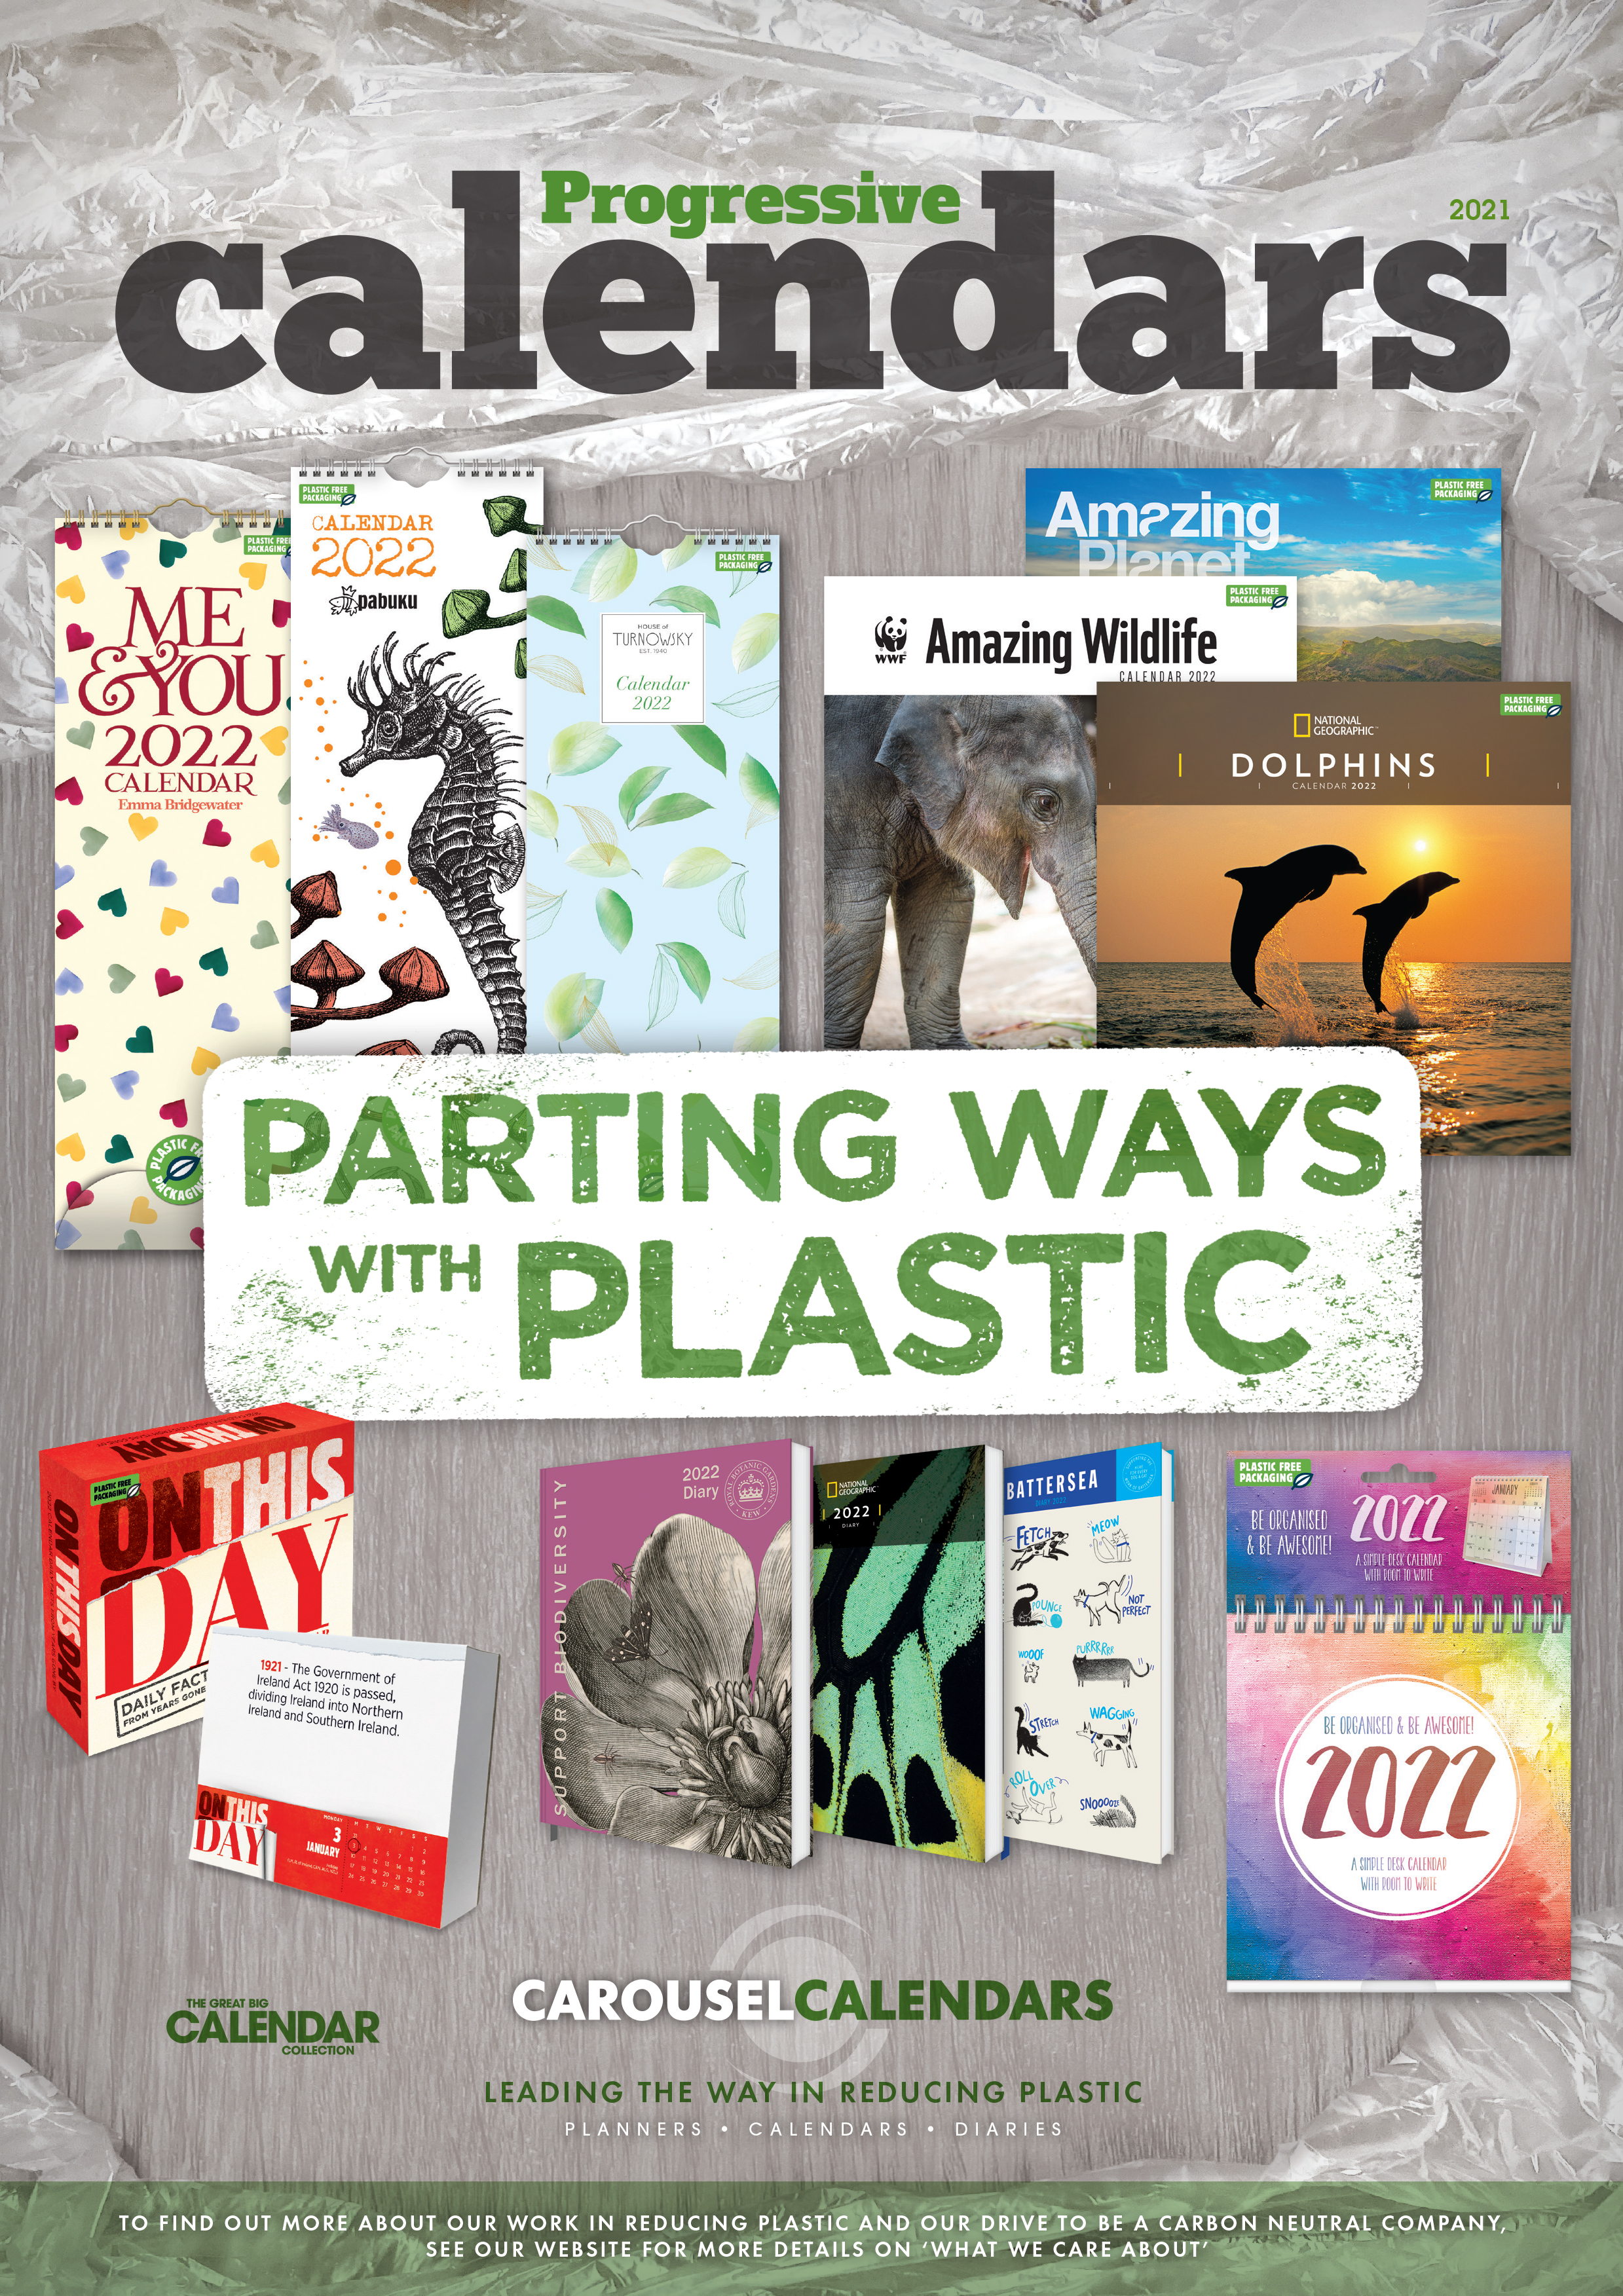 Above: As promoted on the recent cover of Progressive Calendars, Carousel Calendars (together with other companies in its group, such as Calendar Club and Otter House) are well underway with their green pledge to be carbon neutral.